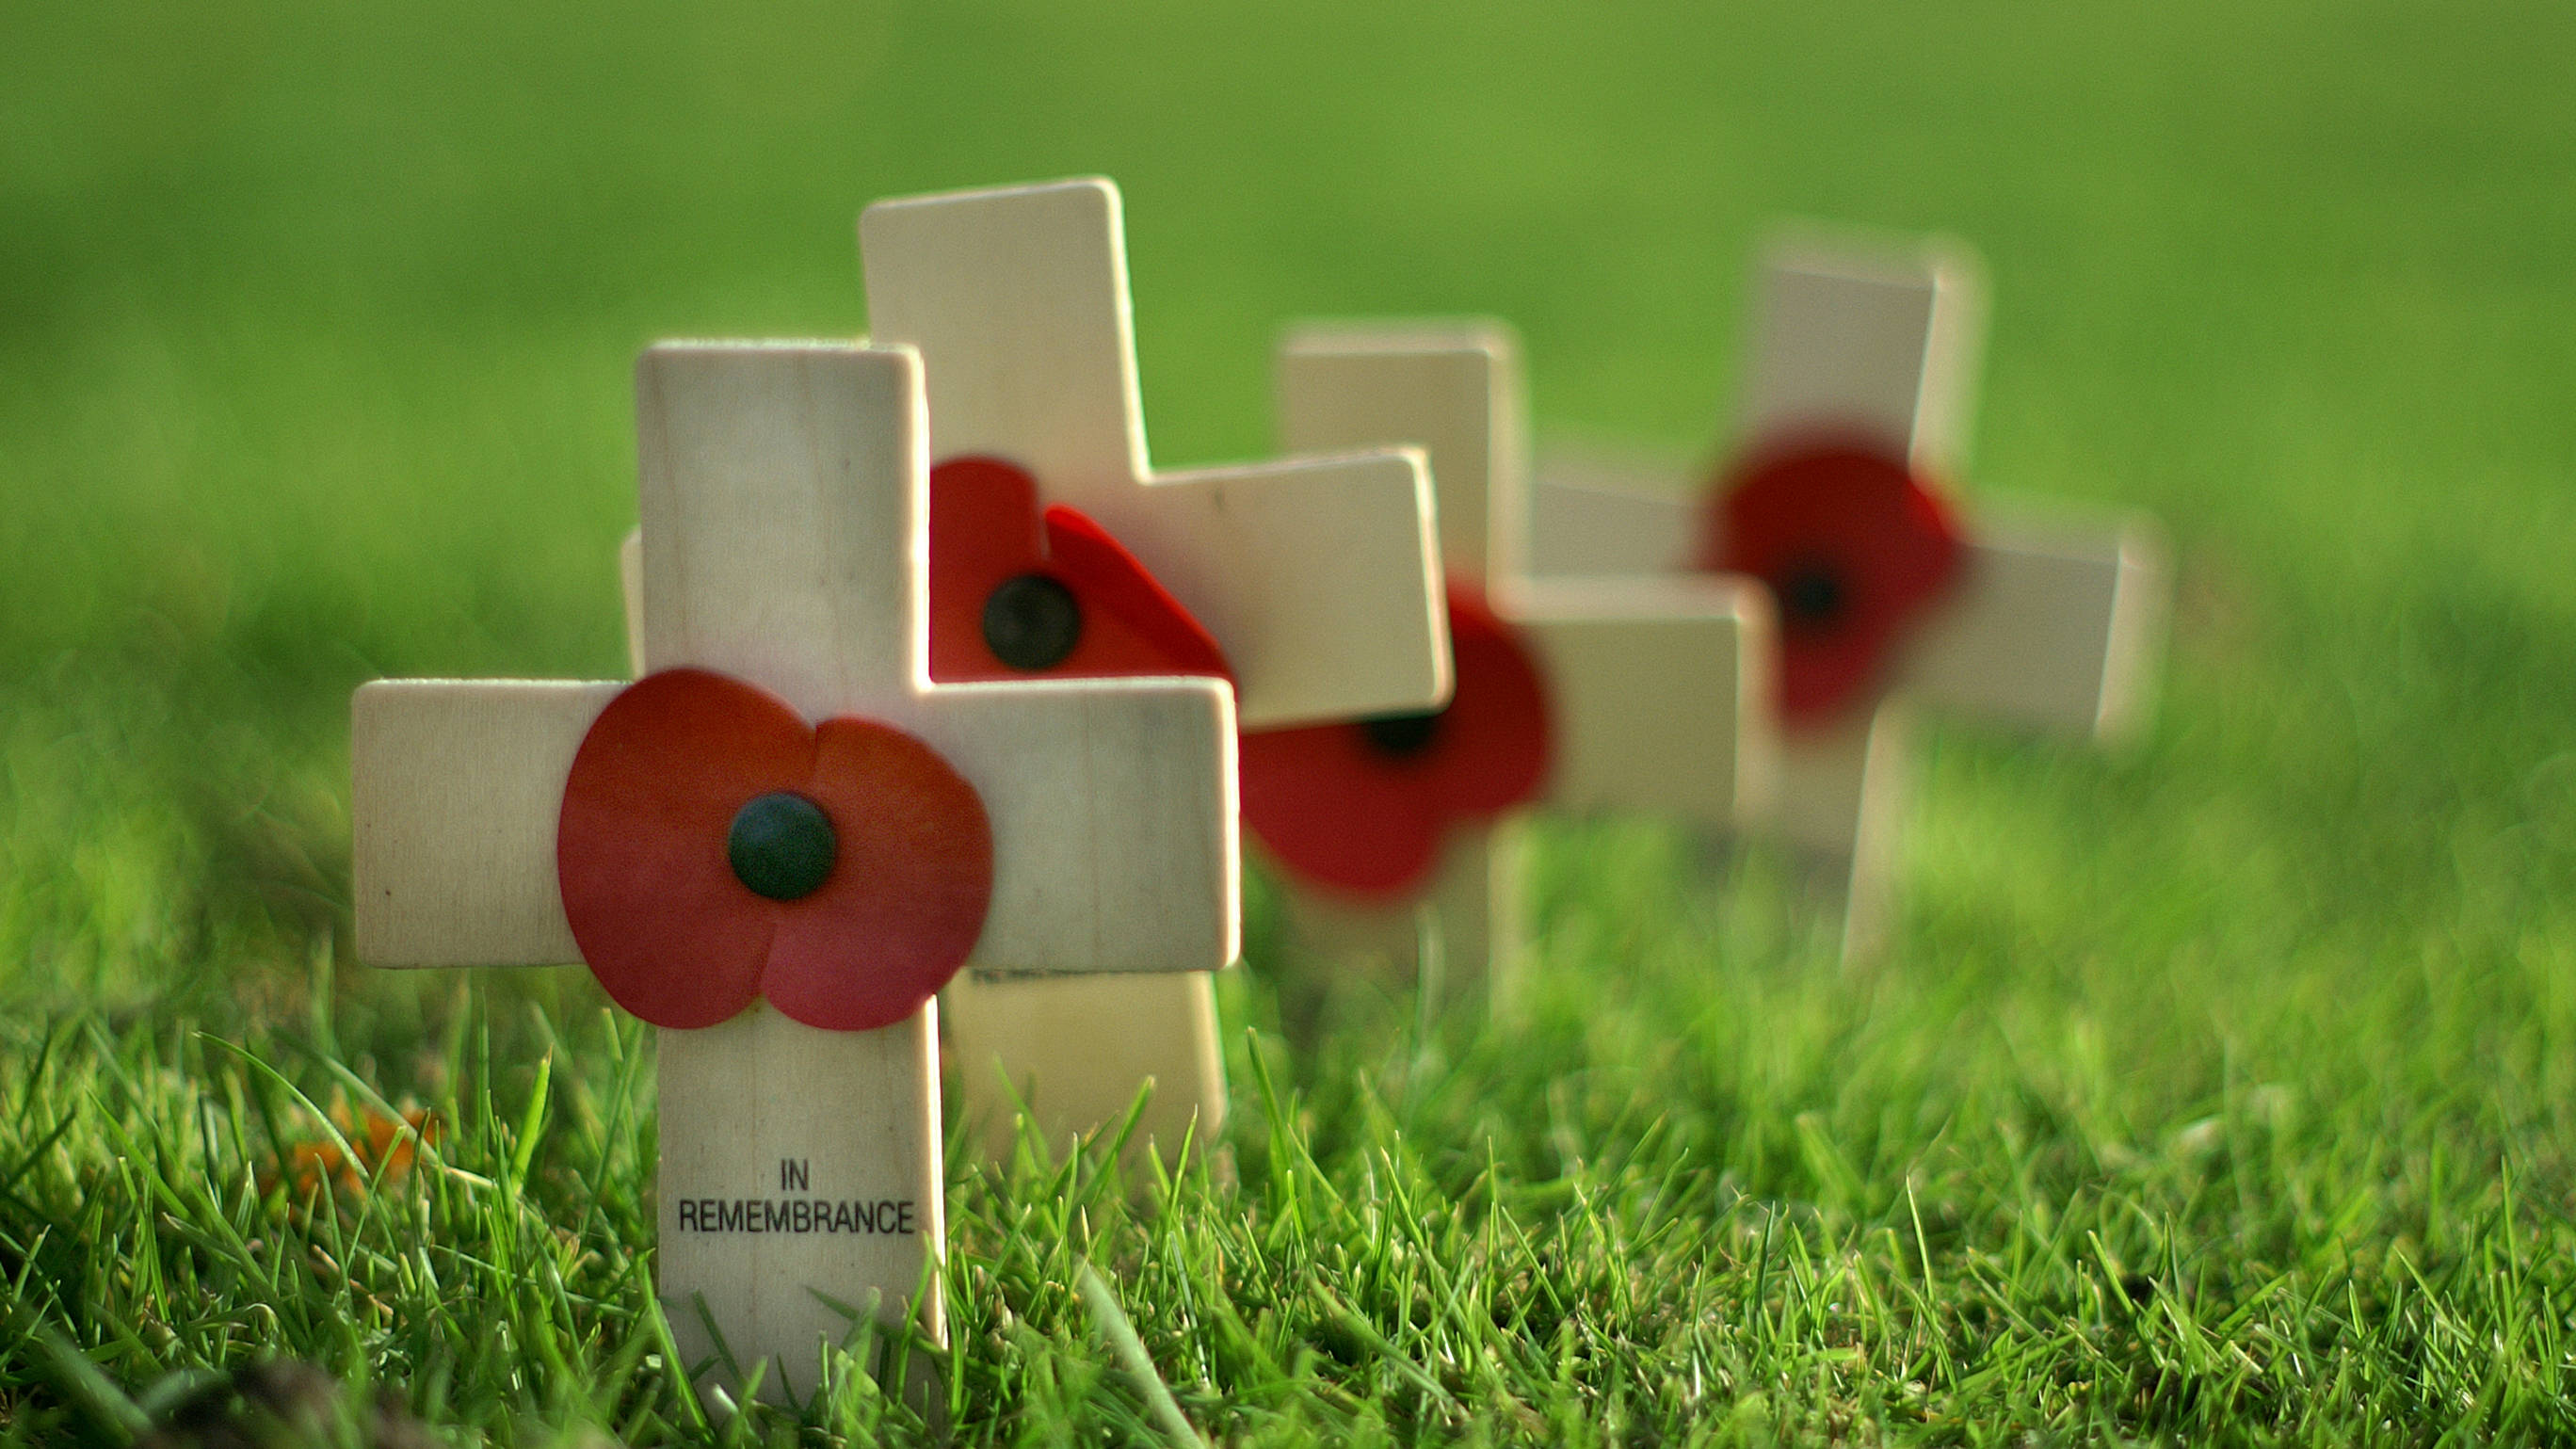 Why do we wear poppies on Remembrance Day and what are white